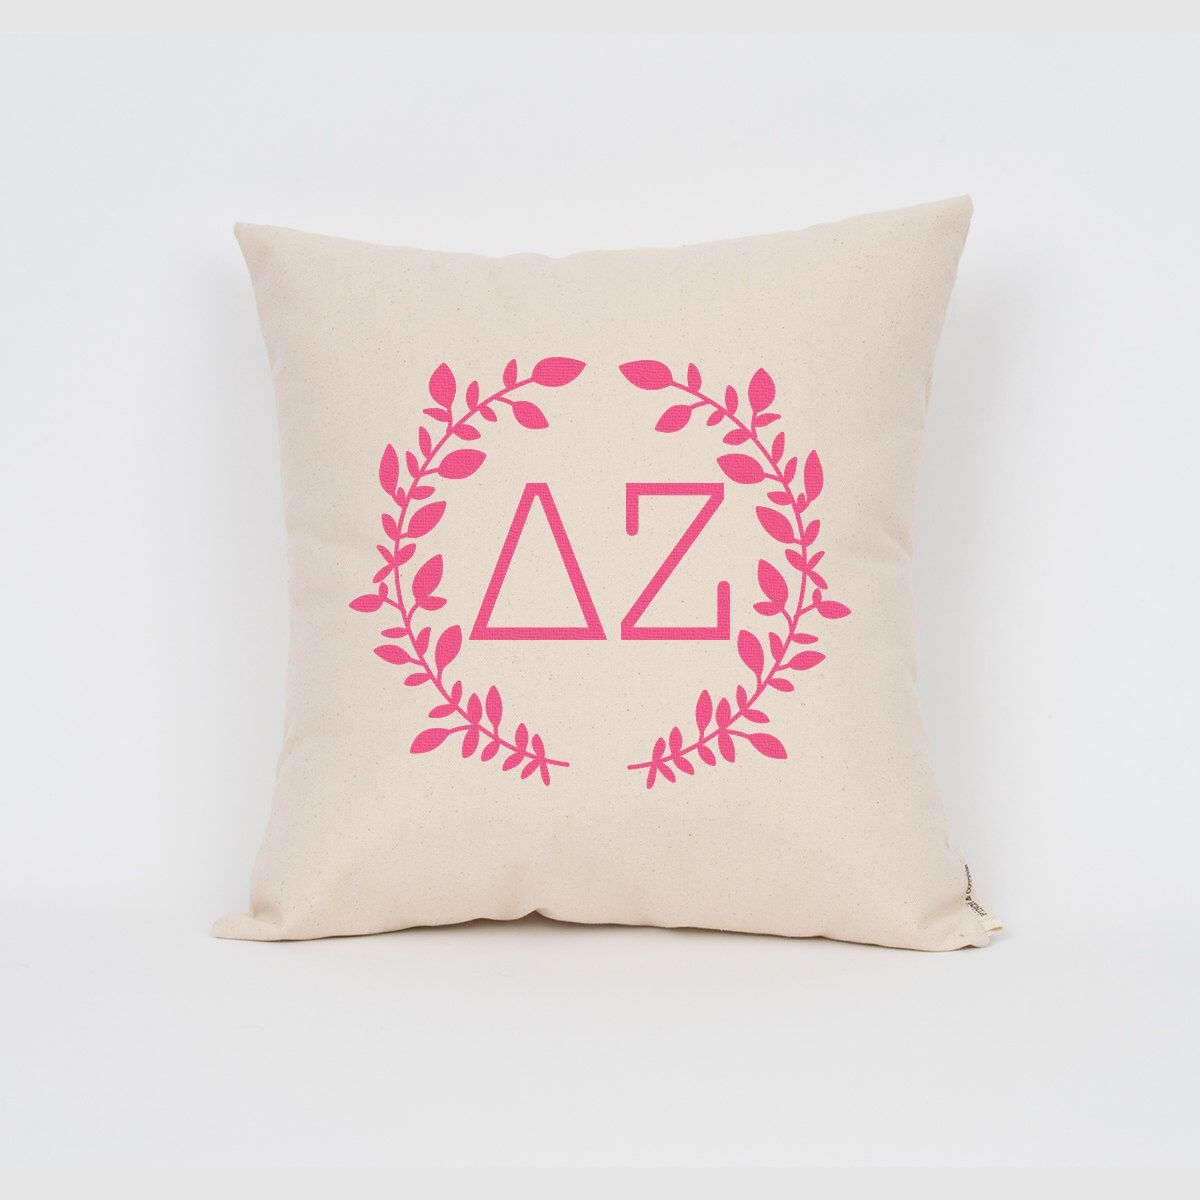 Delta Zeta Wreath Pillow // Choose Your Ink Color // Greek Letter ...